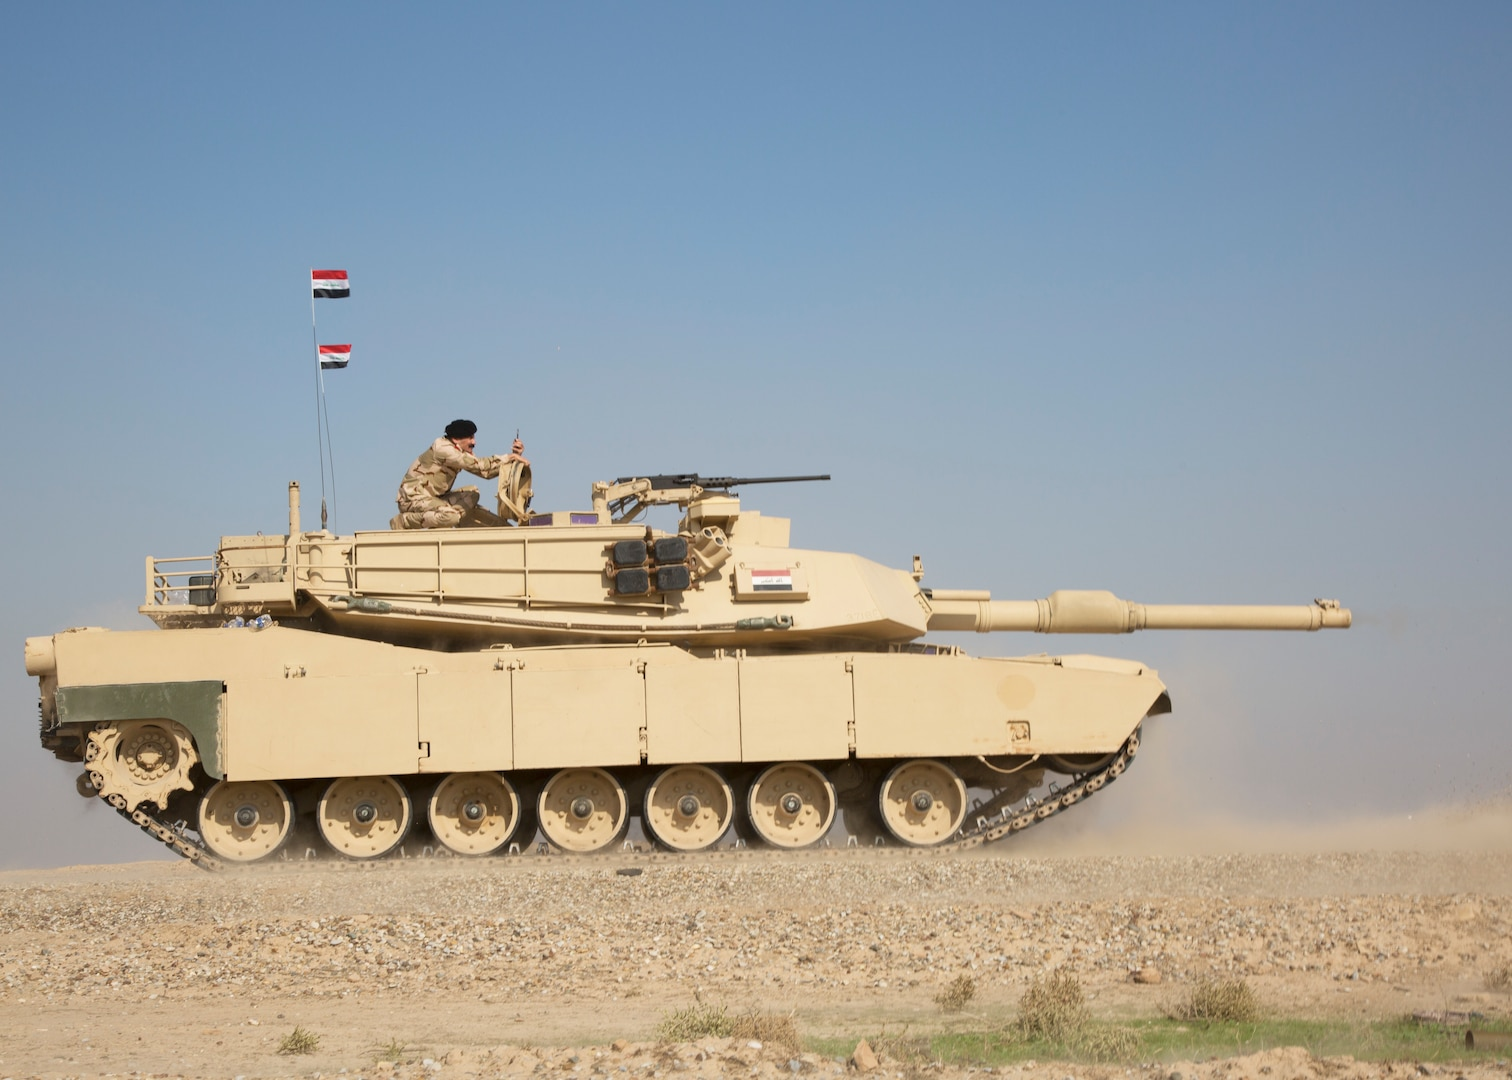 Iraqi soldier watches exercise from top of tank.